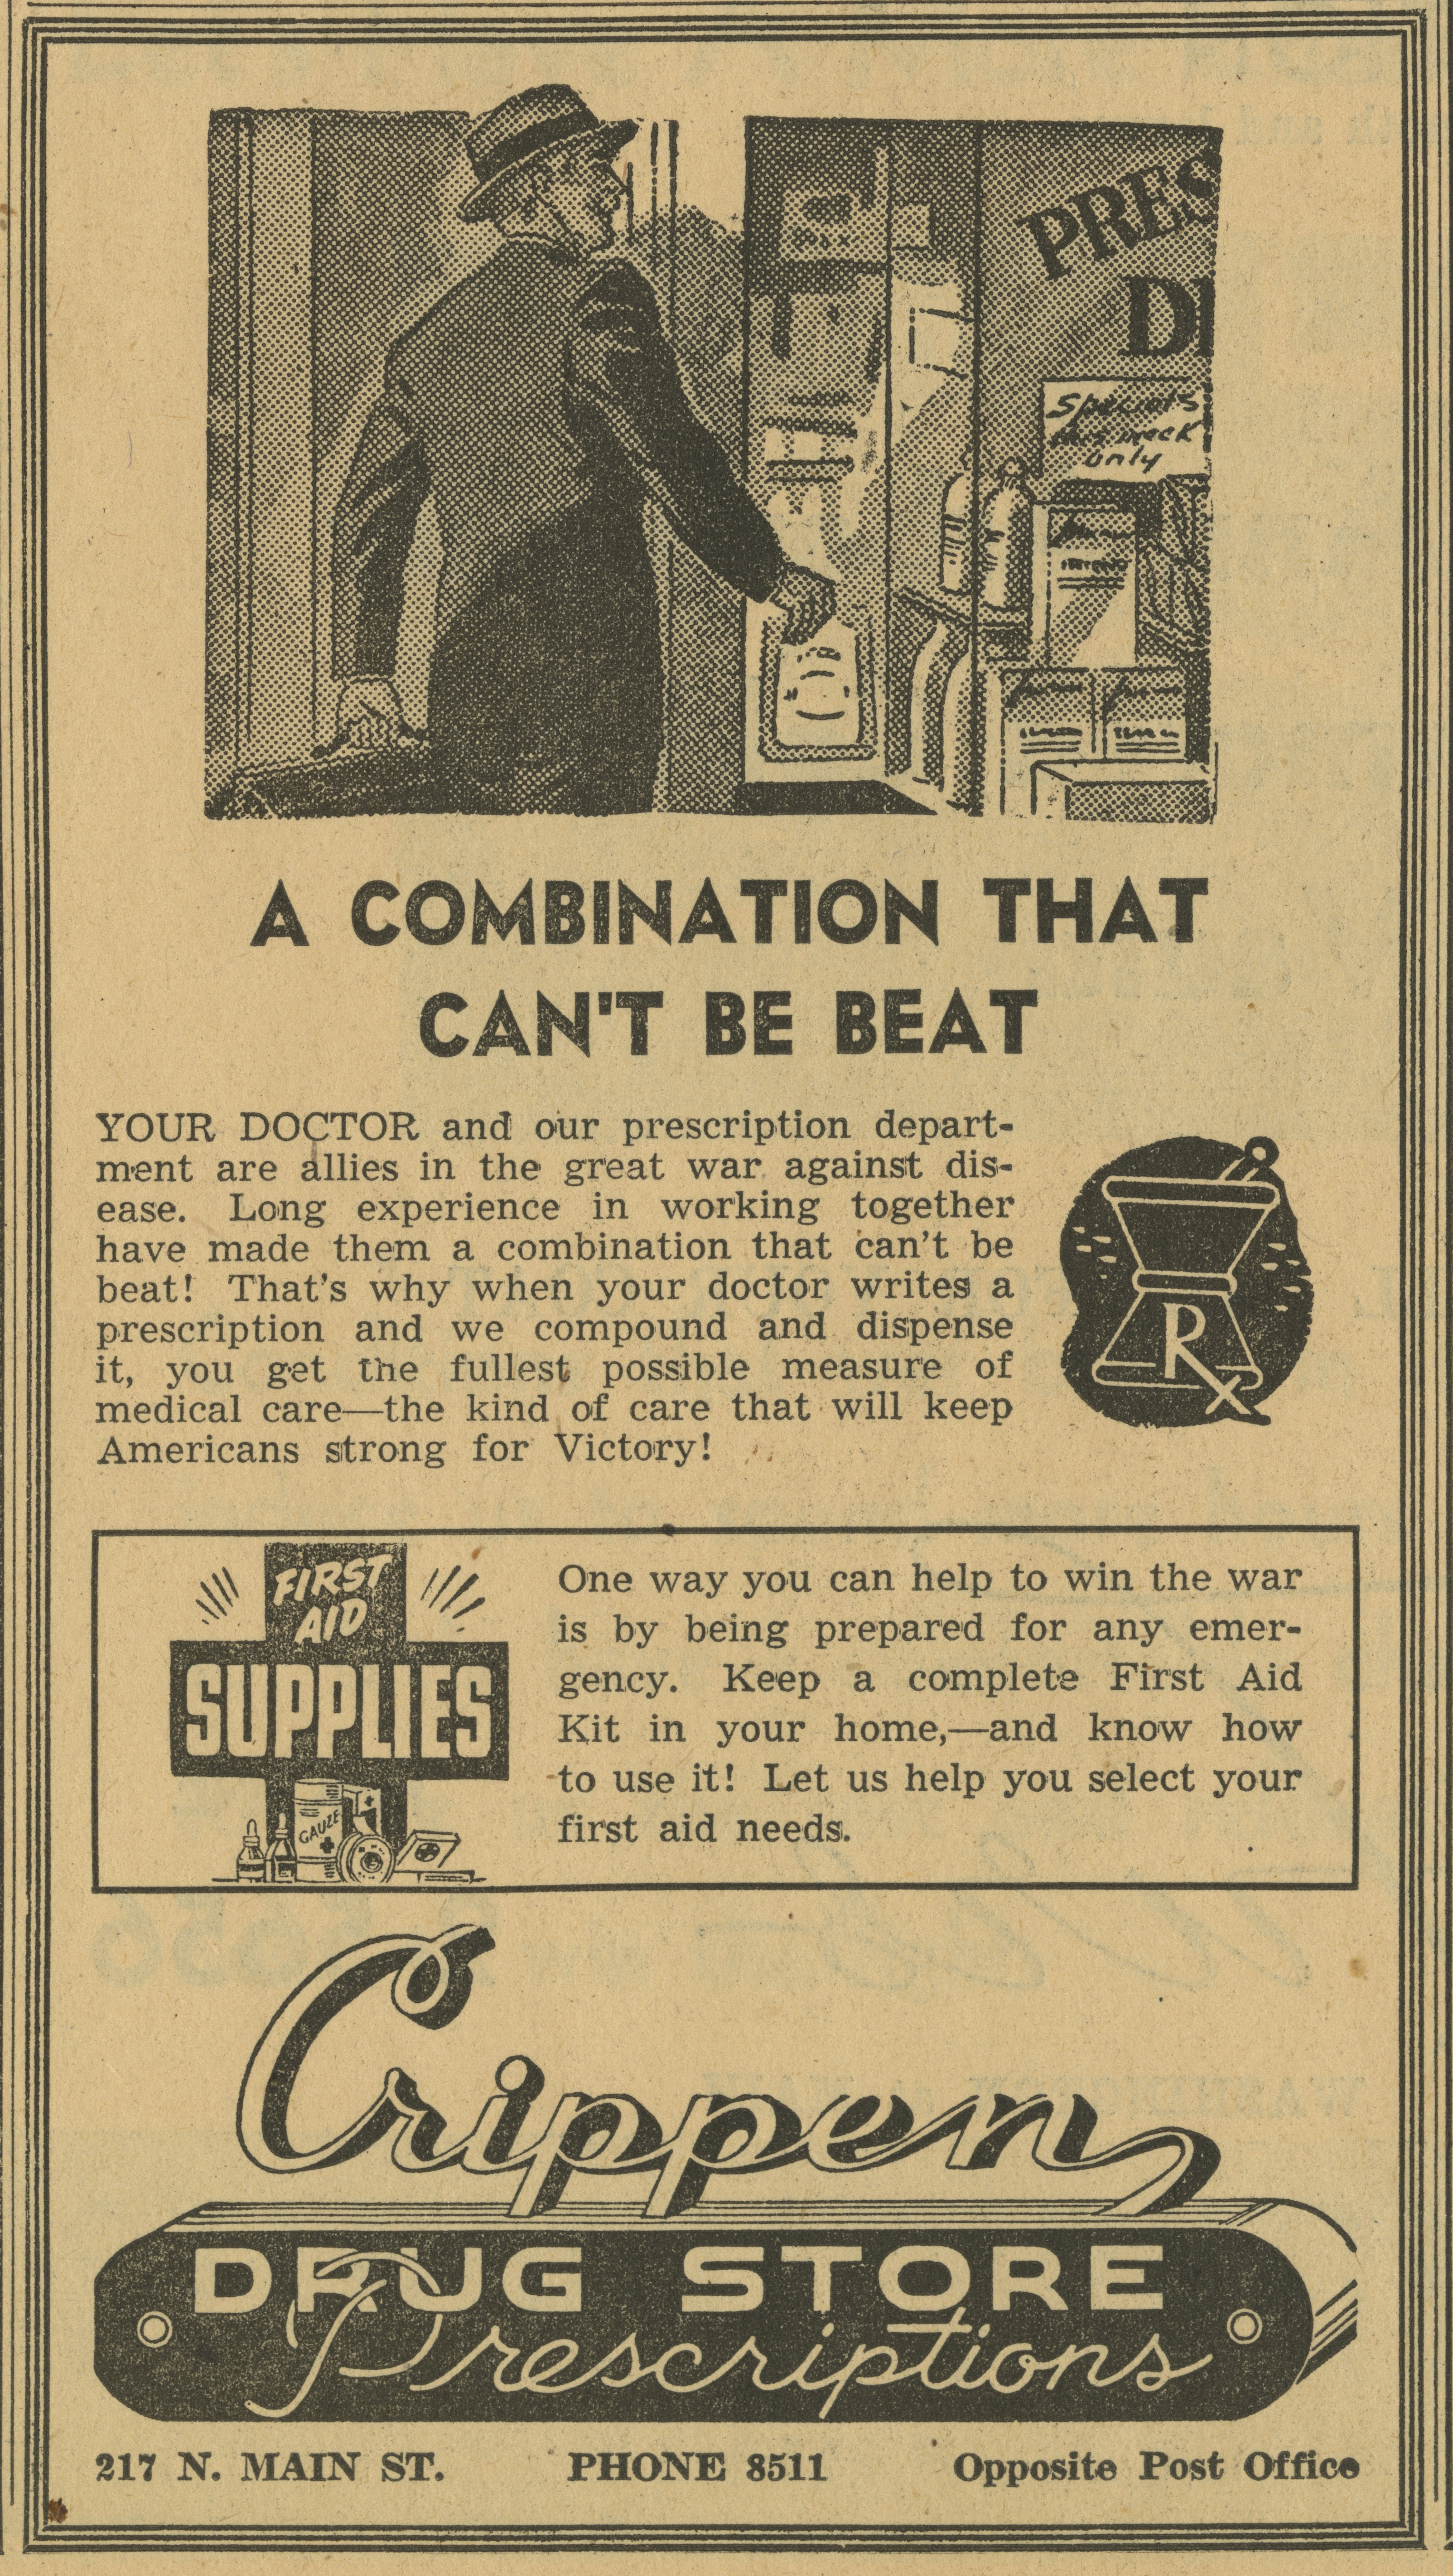 Crippen Drug Store [advertisement] image